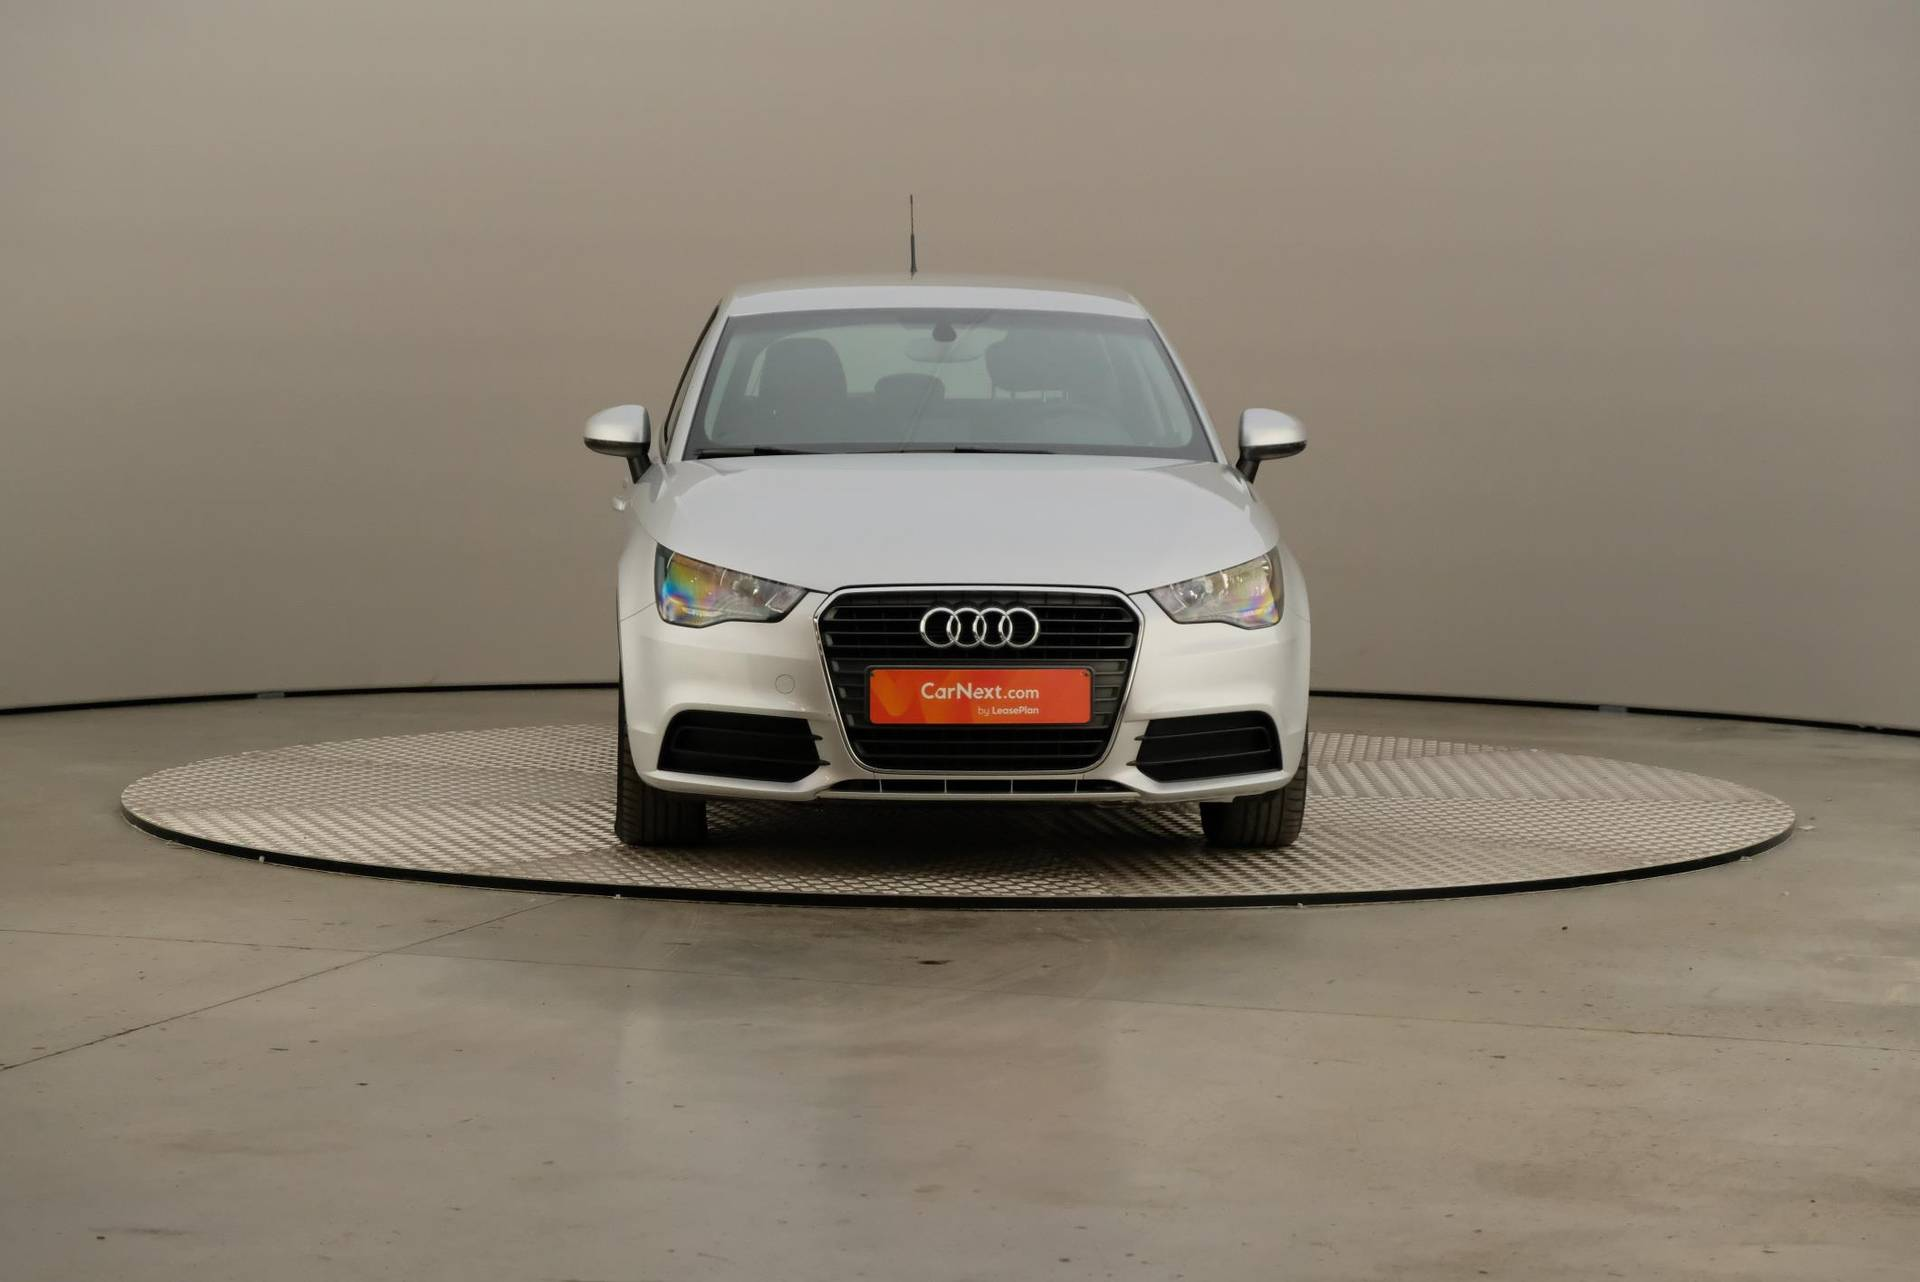 Audi A1 1.6 TDI Sportback, Attraction S&S PDC BT, 360-image31